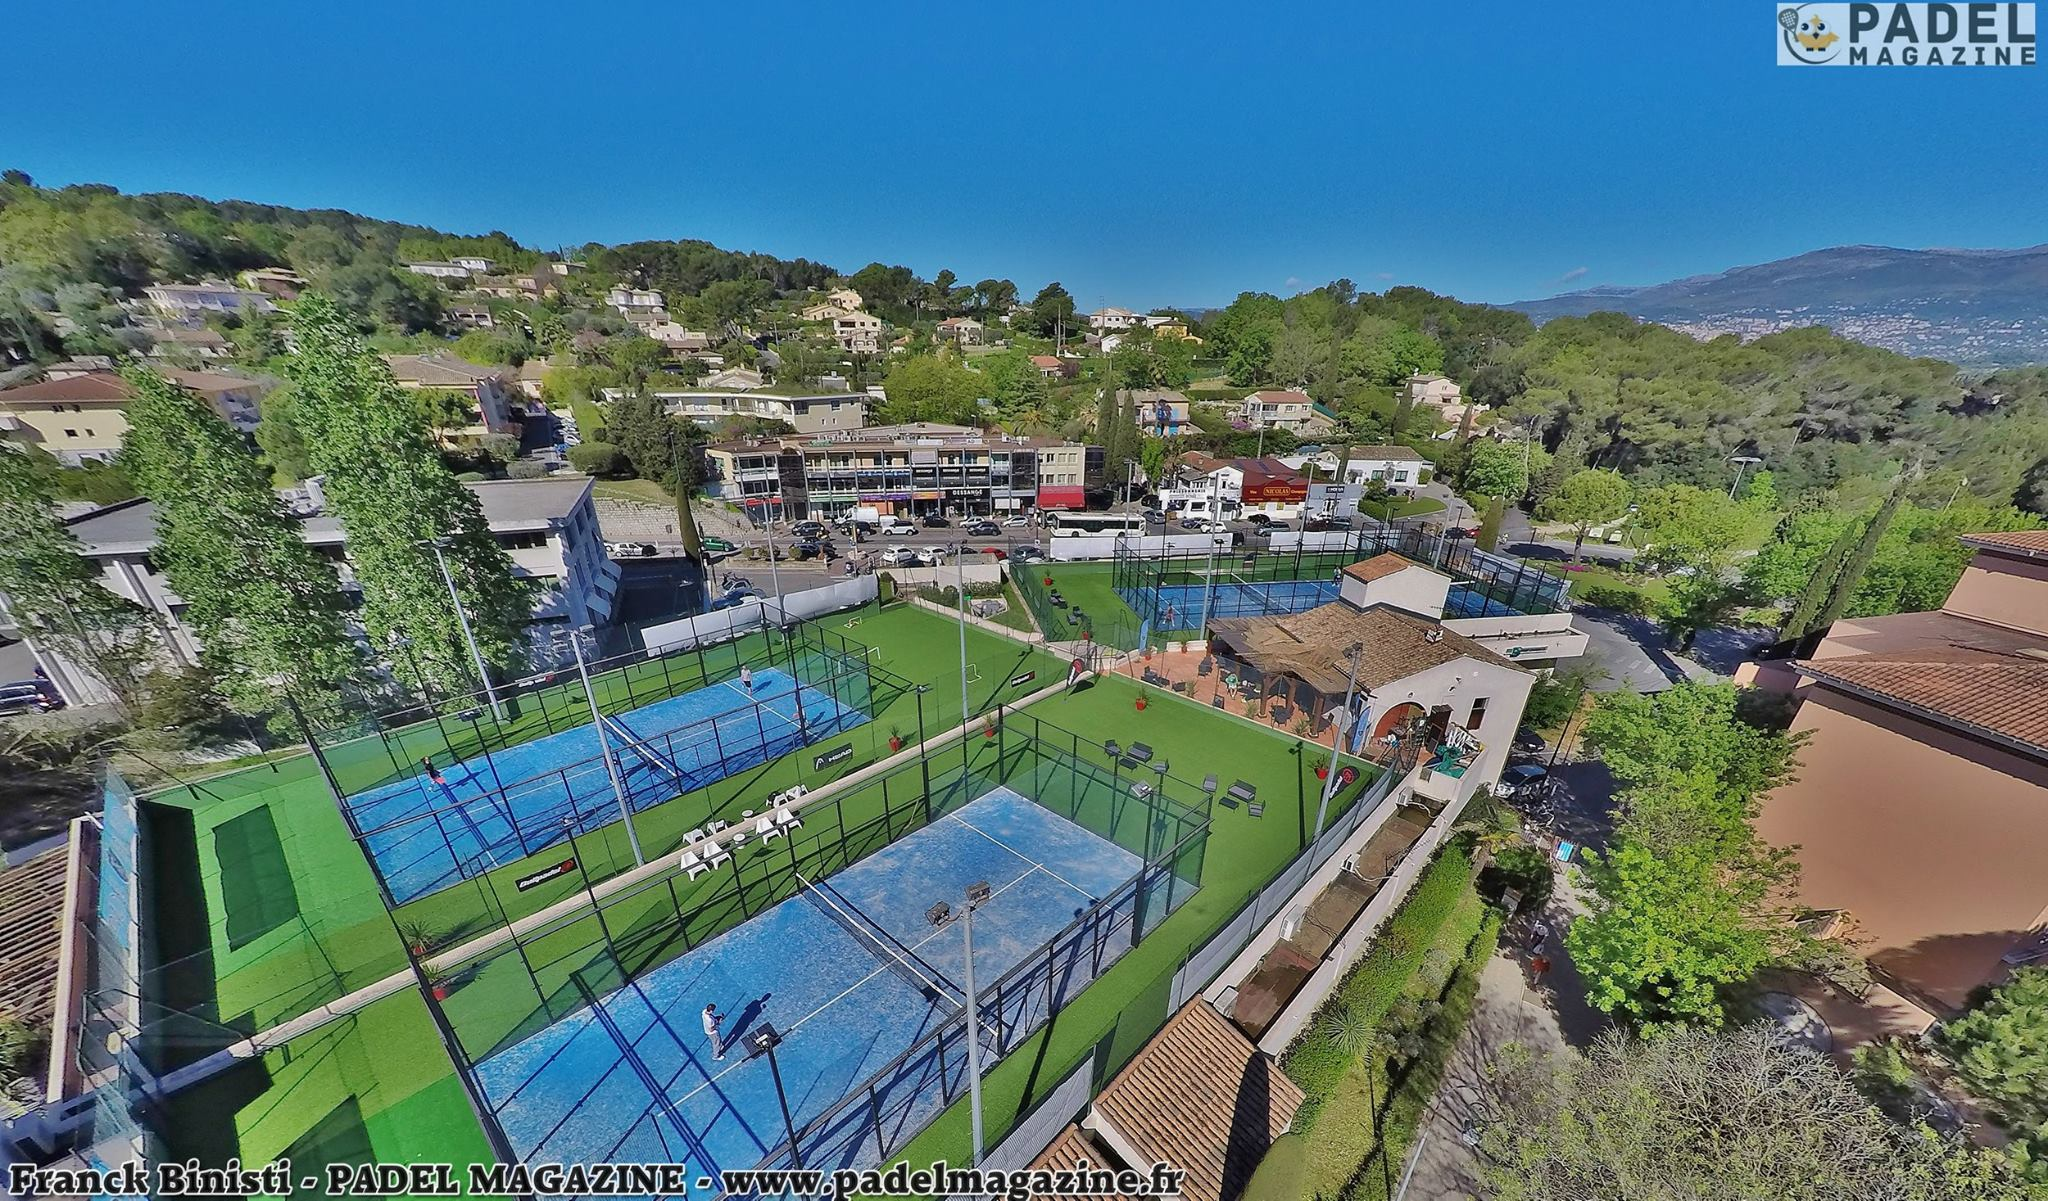 P1000 Women - Open Padel Riviera Mougins